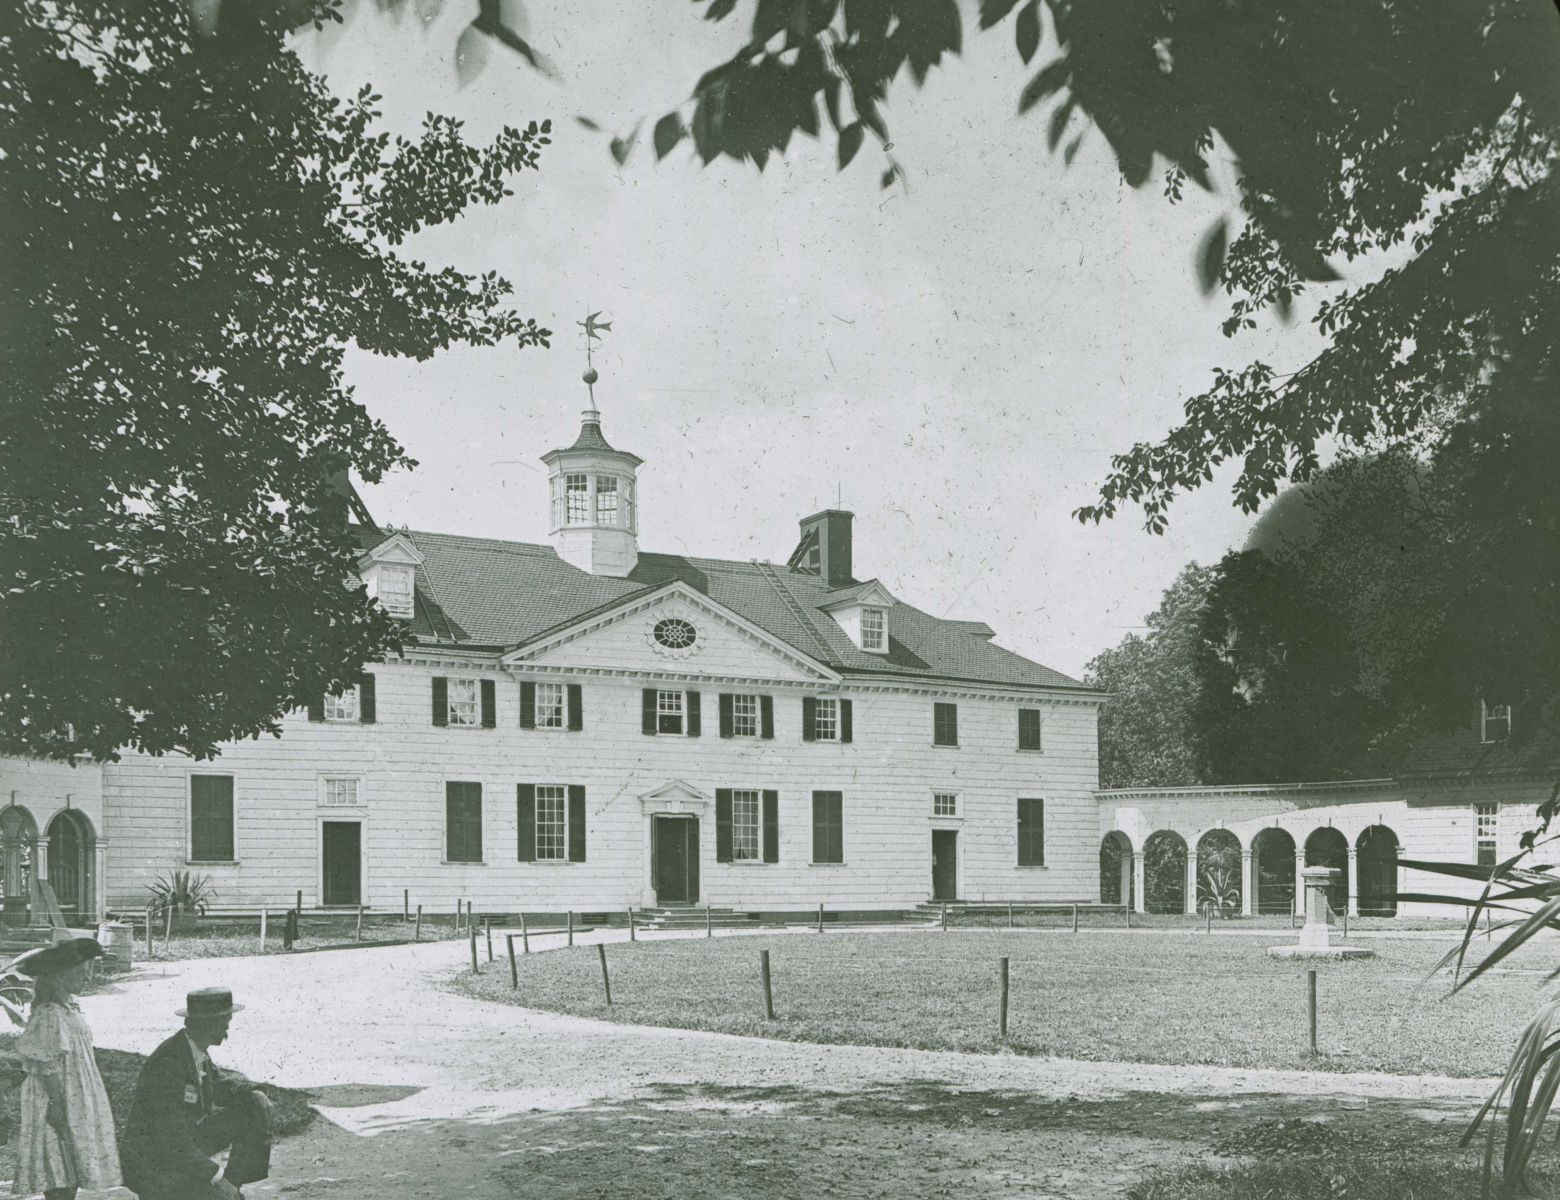 A black and white photo of the Mansion at Mount Vernon is taken from some trees to the left of the house. A man kneels, and a young girl stands beside him in the foreground of the picture.